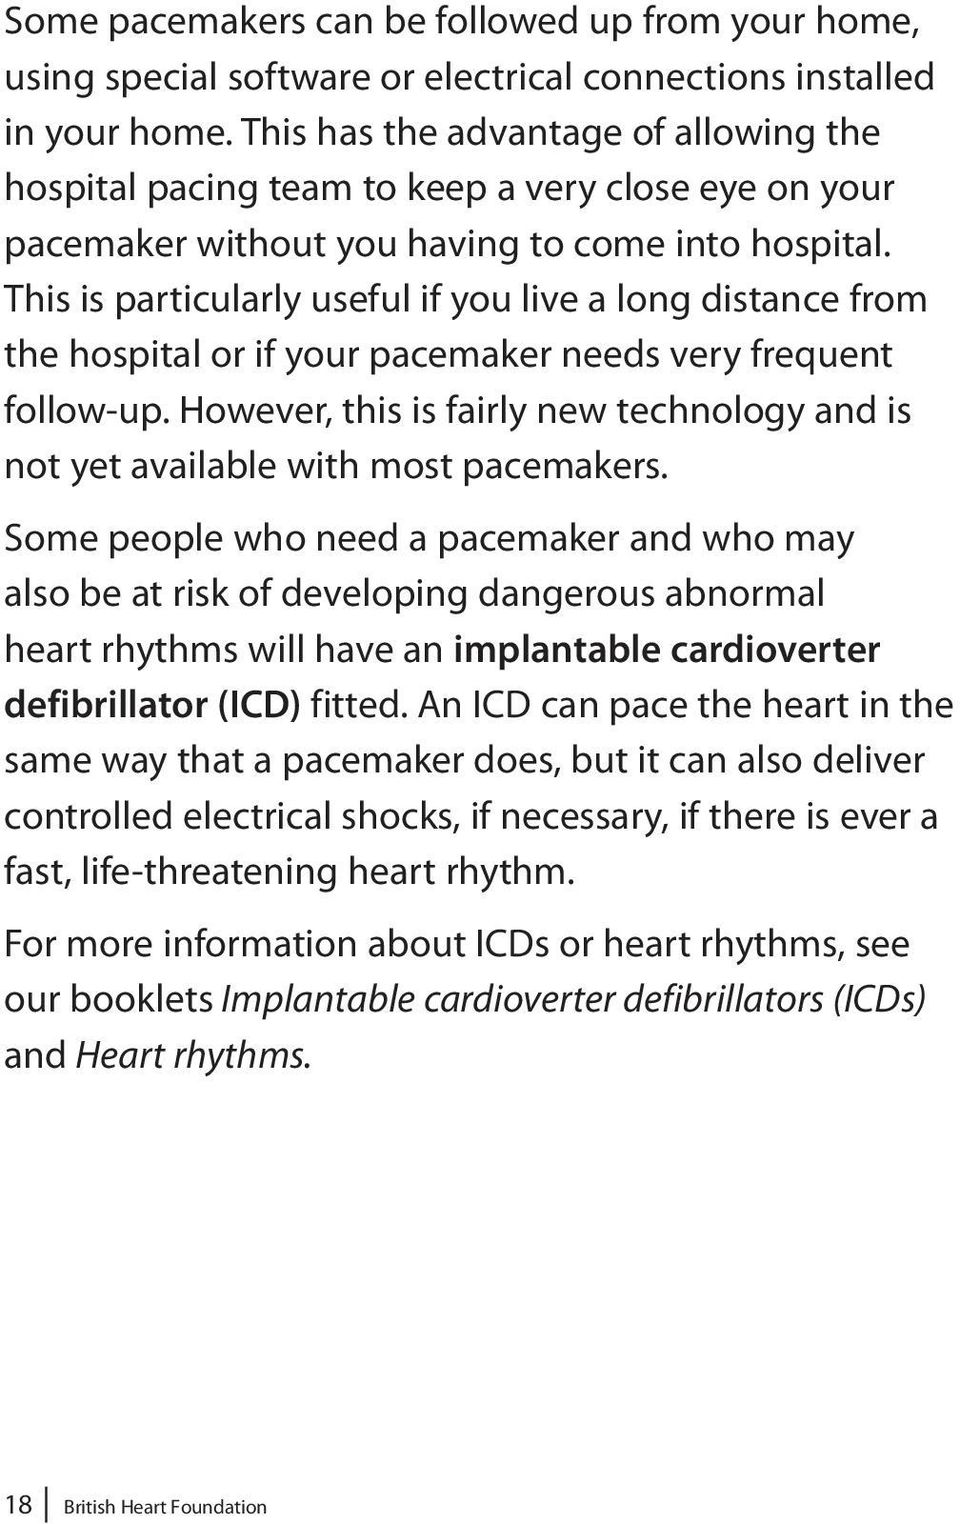 This is particularly useful if you live a long distance from the hospital or if your pacemaker needs very frequent follow-up.